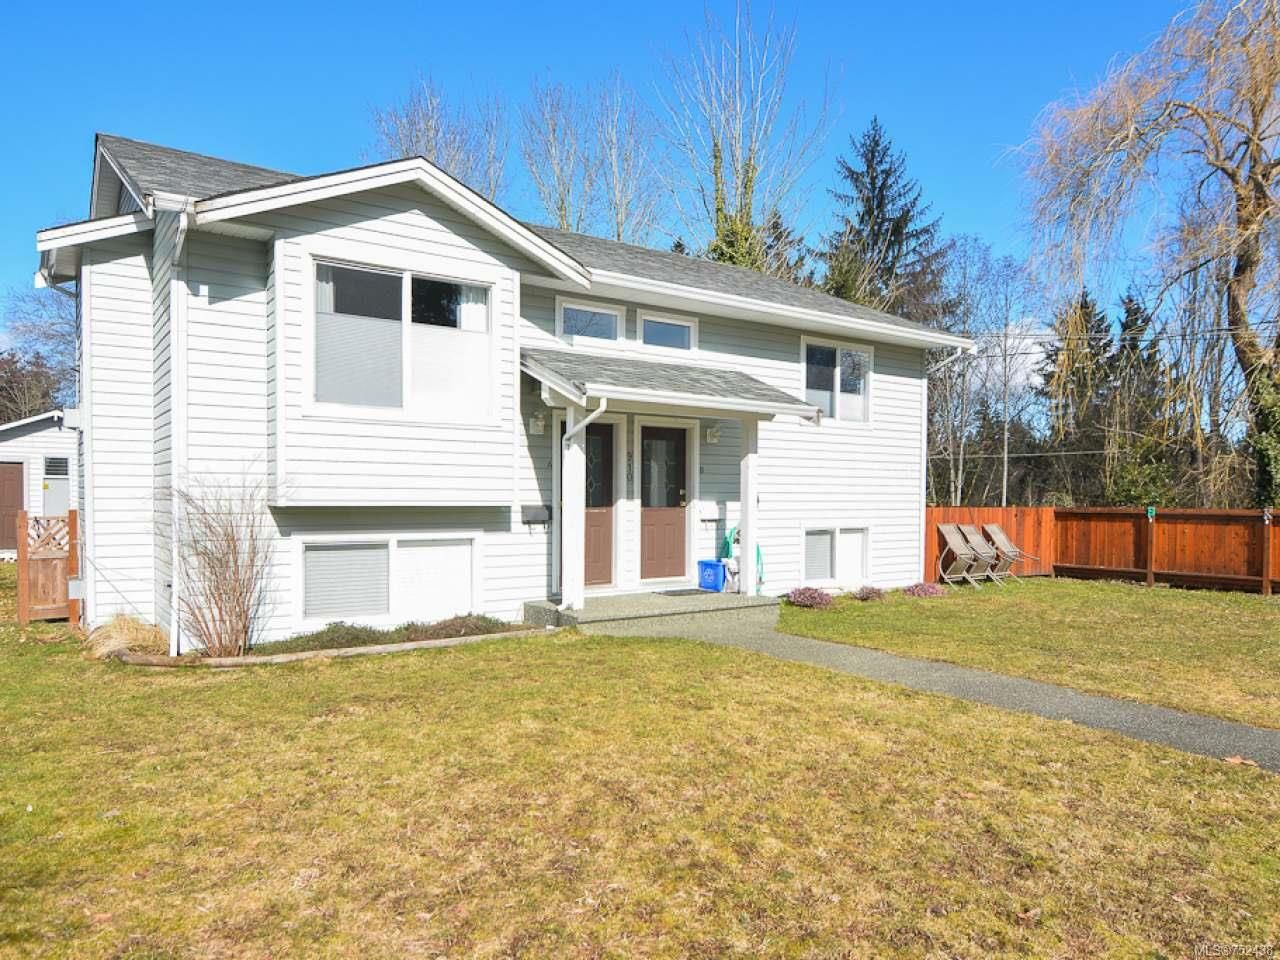 Main Photo: A 910 1st St in COURTENAY: CV Courtenay City Half Duplex for sale (Comox Valley)  : MLS®# 752438